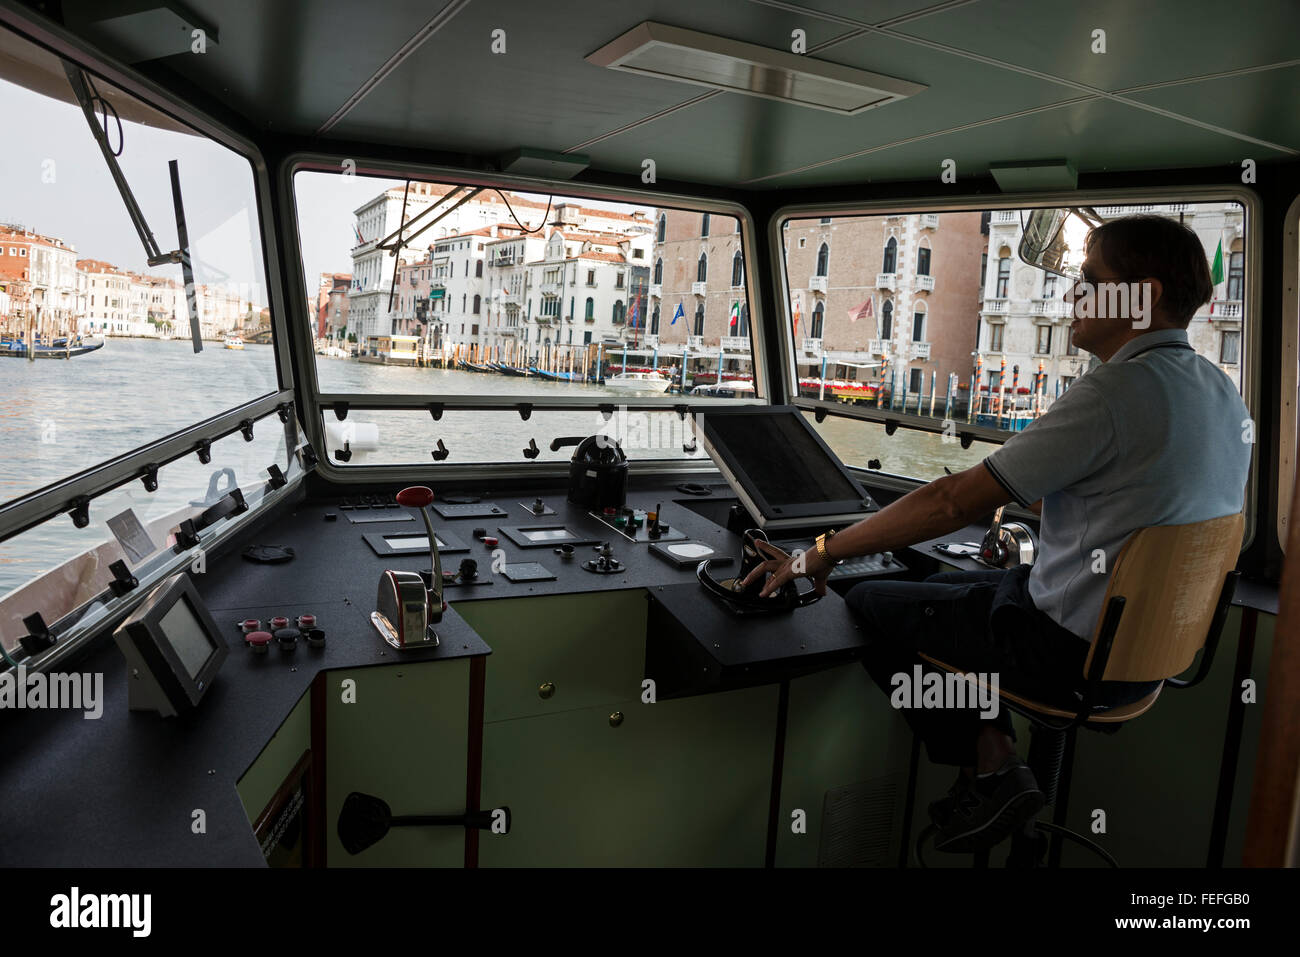 A crew member at the controls of the ACTV  vaporetto ( water bus)  operating on the Canal Grande ( Grand Canal) - Stock Image